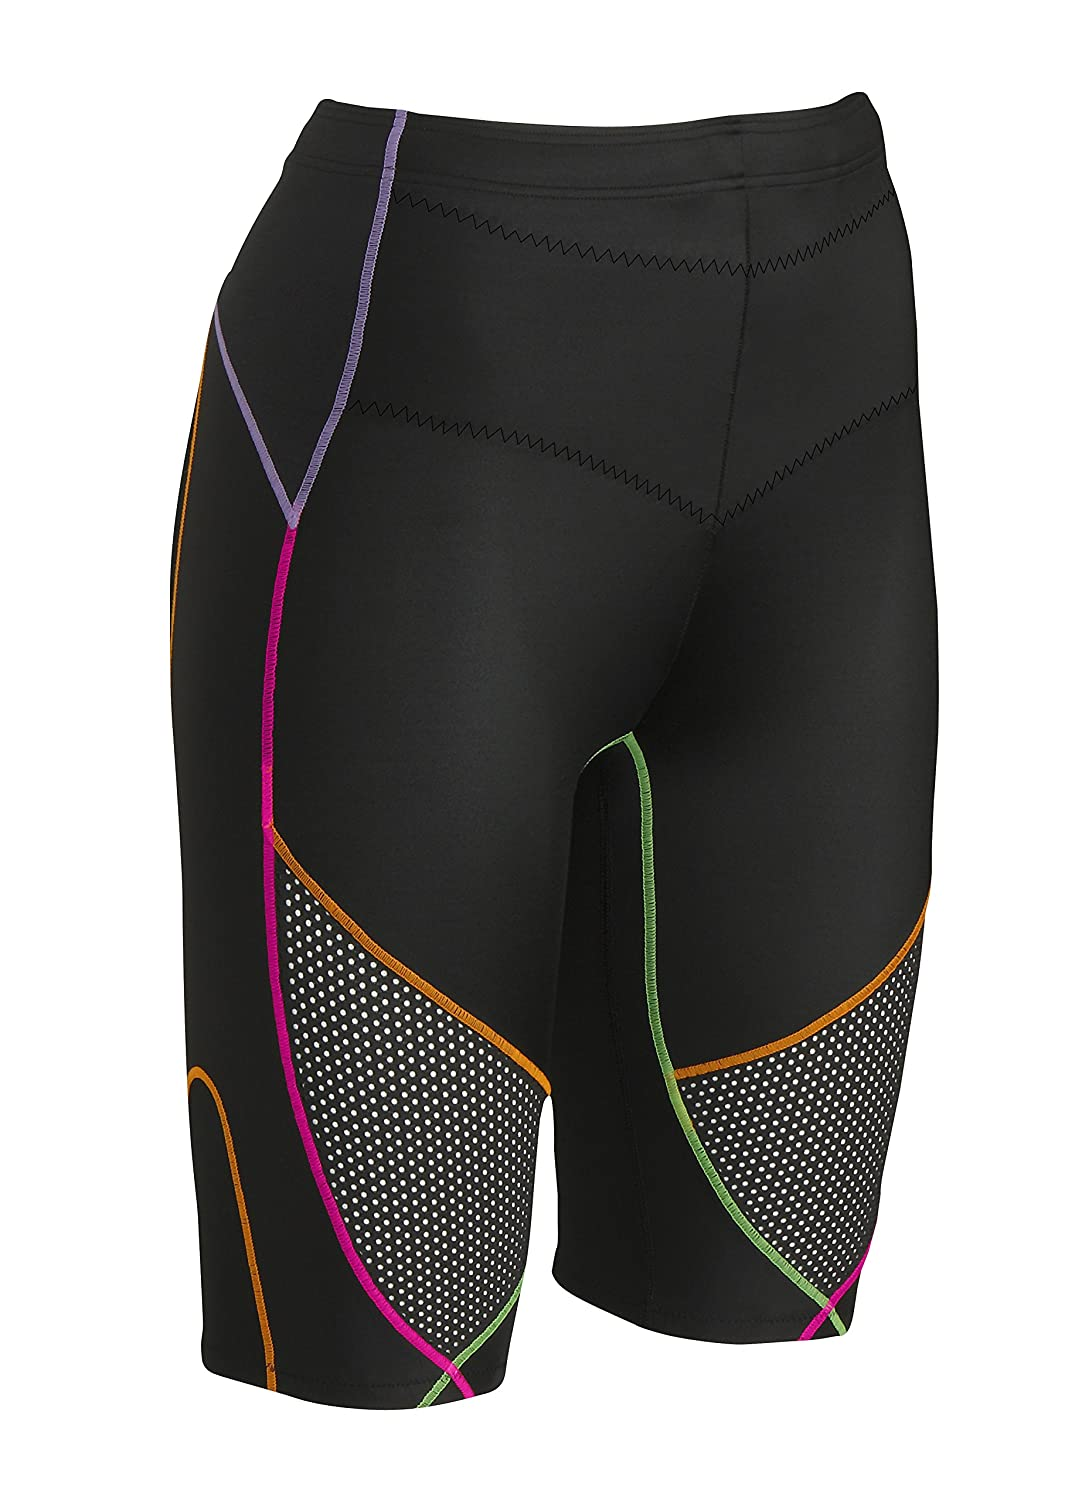 CW-X Women's Mid Rise Stabilyx Ventilator Cooling Compression Sports Shorts 127805-977-P